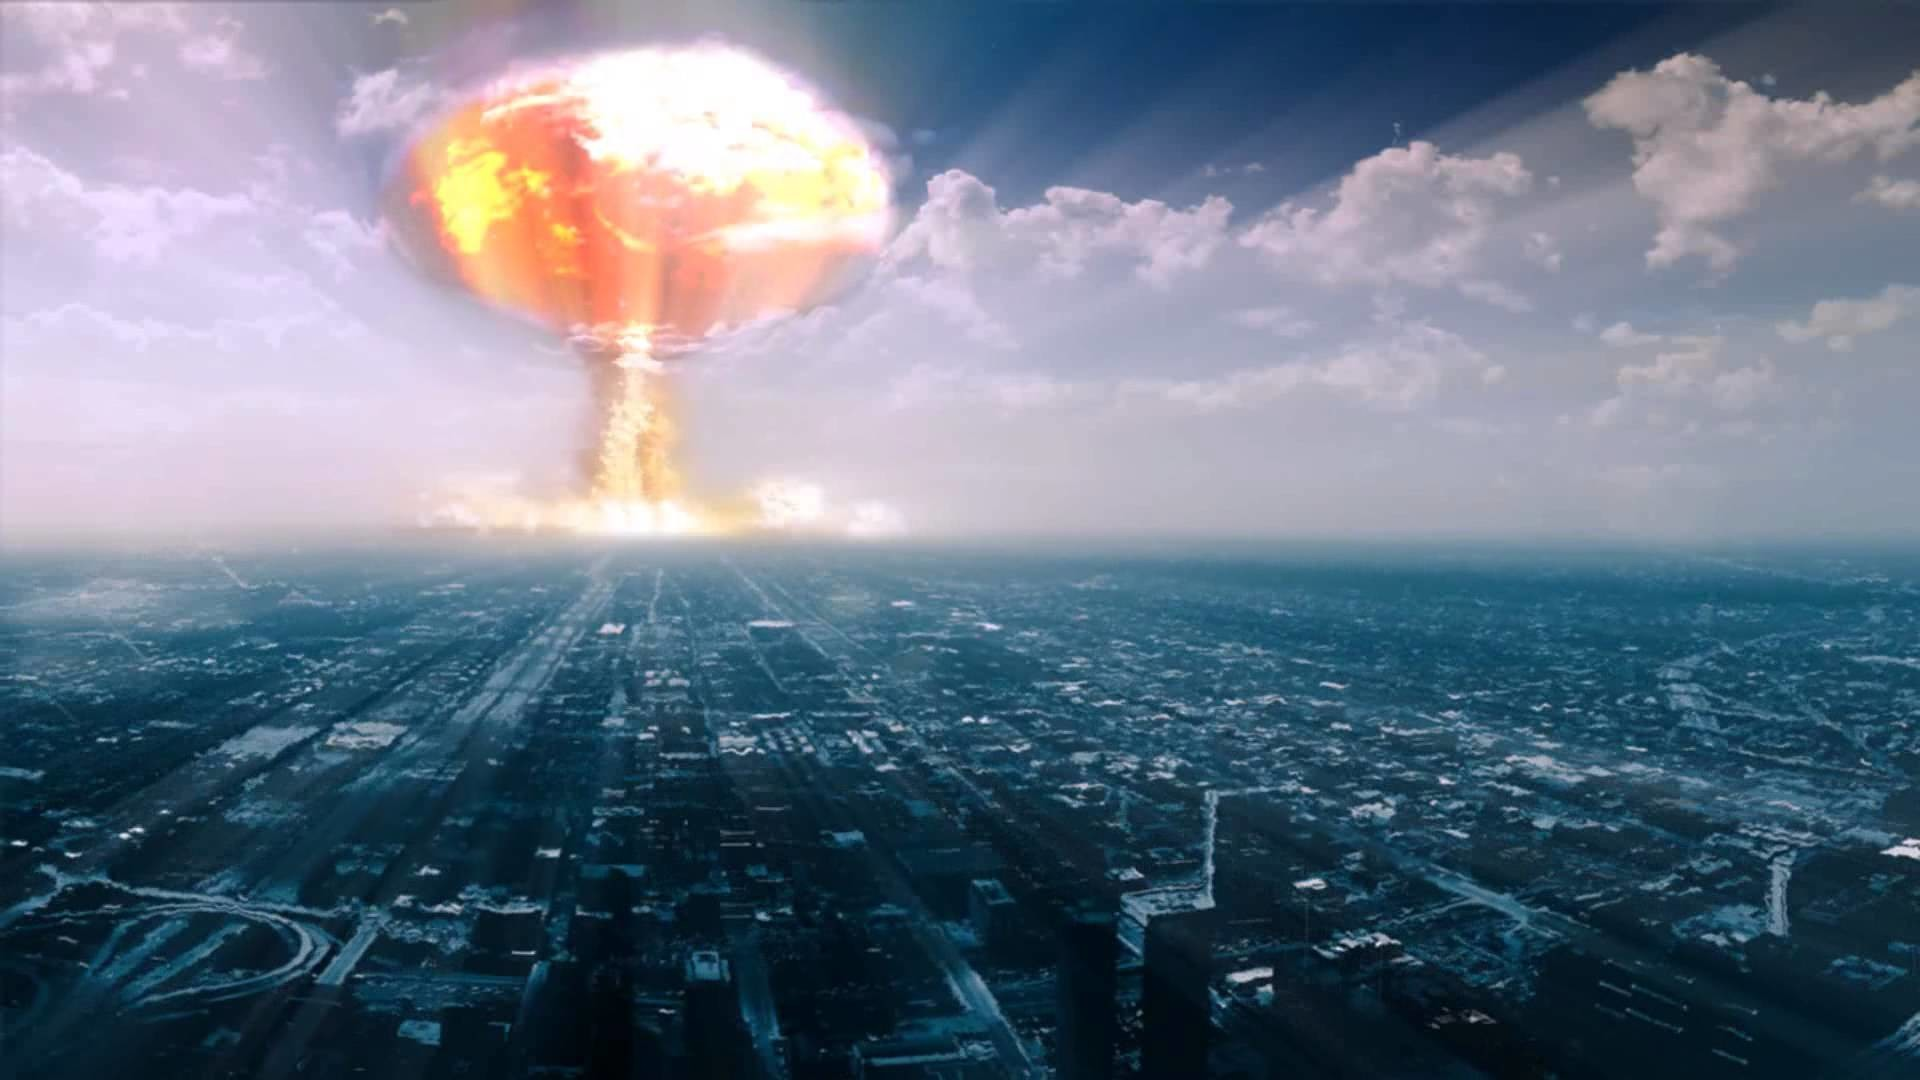 How To Make Live Wallpaper Work Iphone X Nuclear Bomb Wallpapers 183 ①